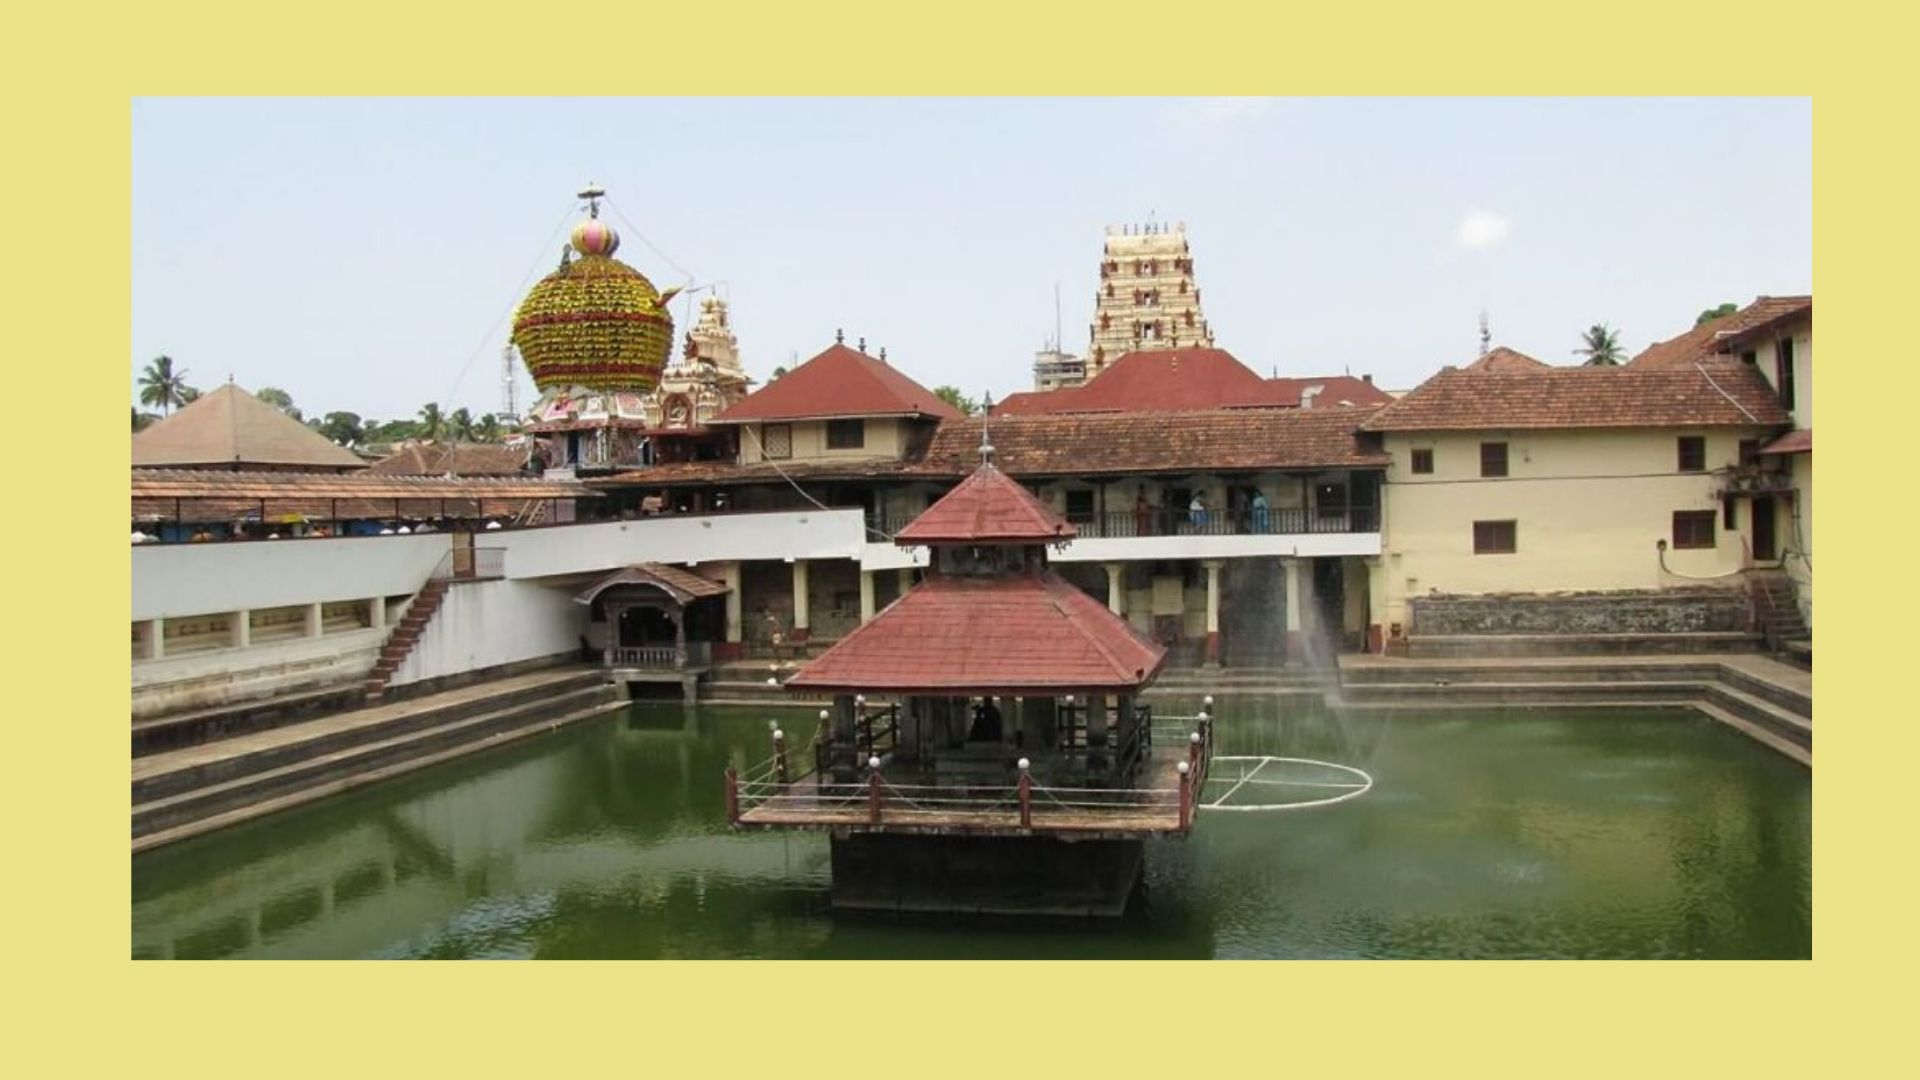 1749 pond in krishna math udupi karnataka 1024x768 1